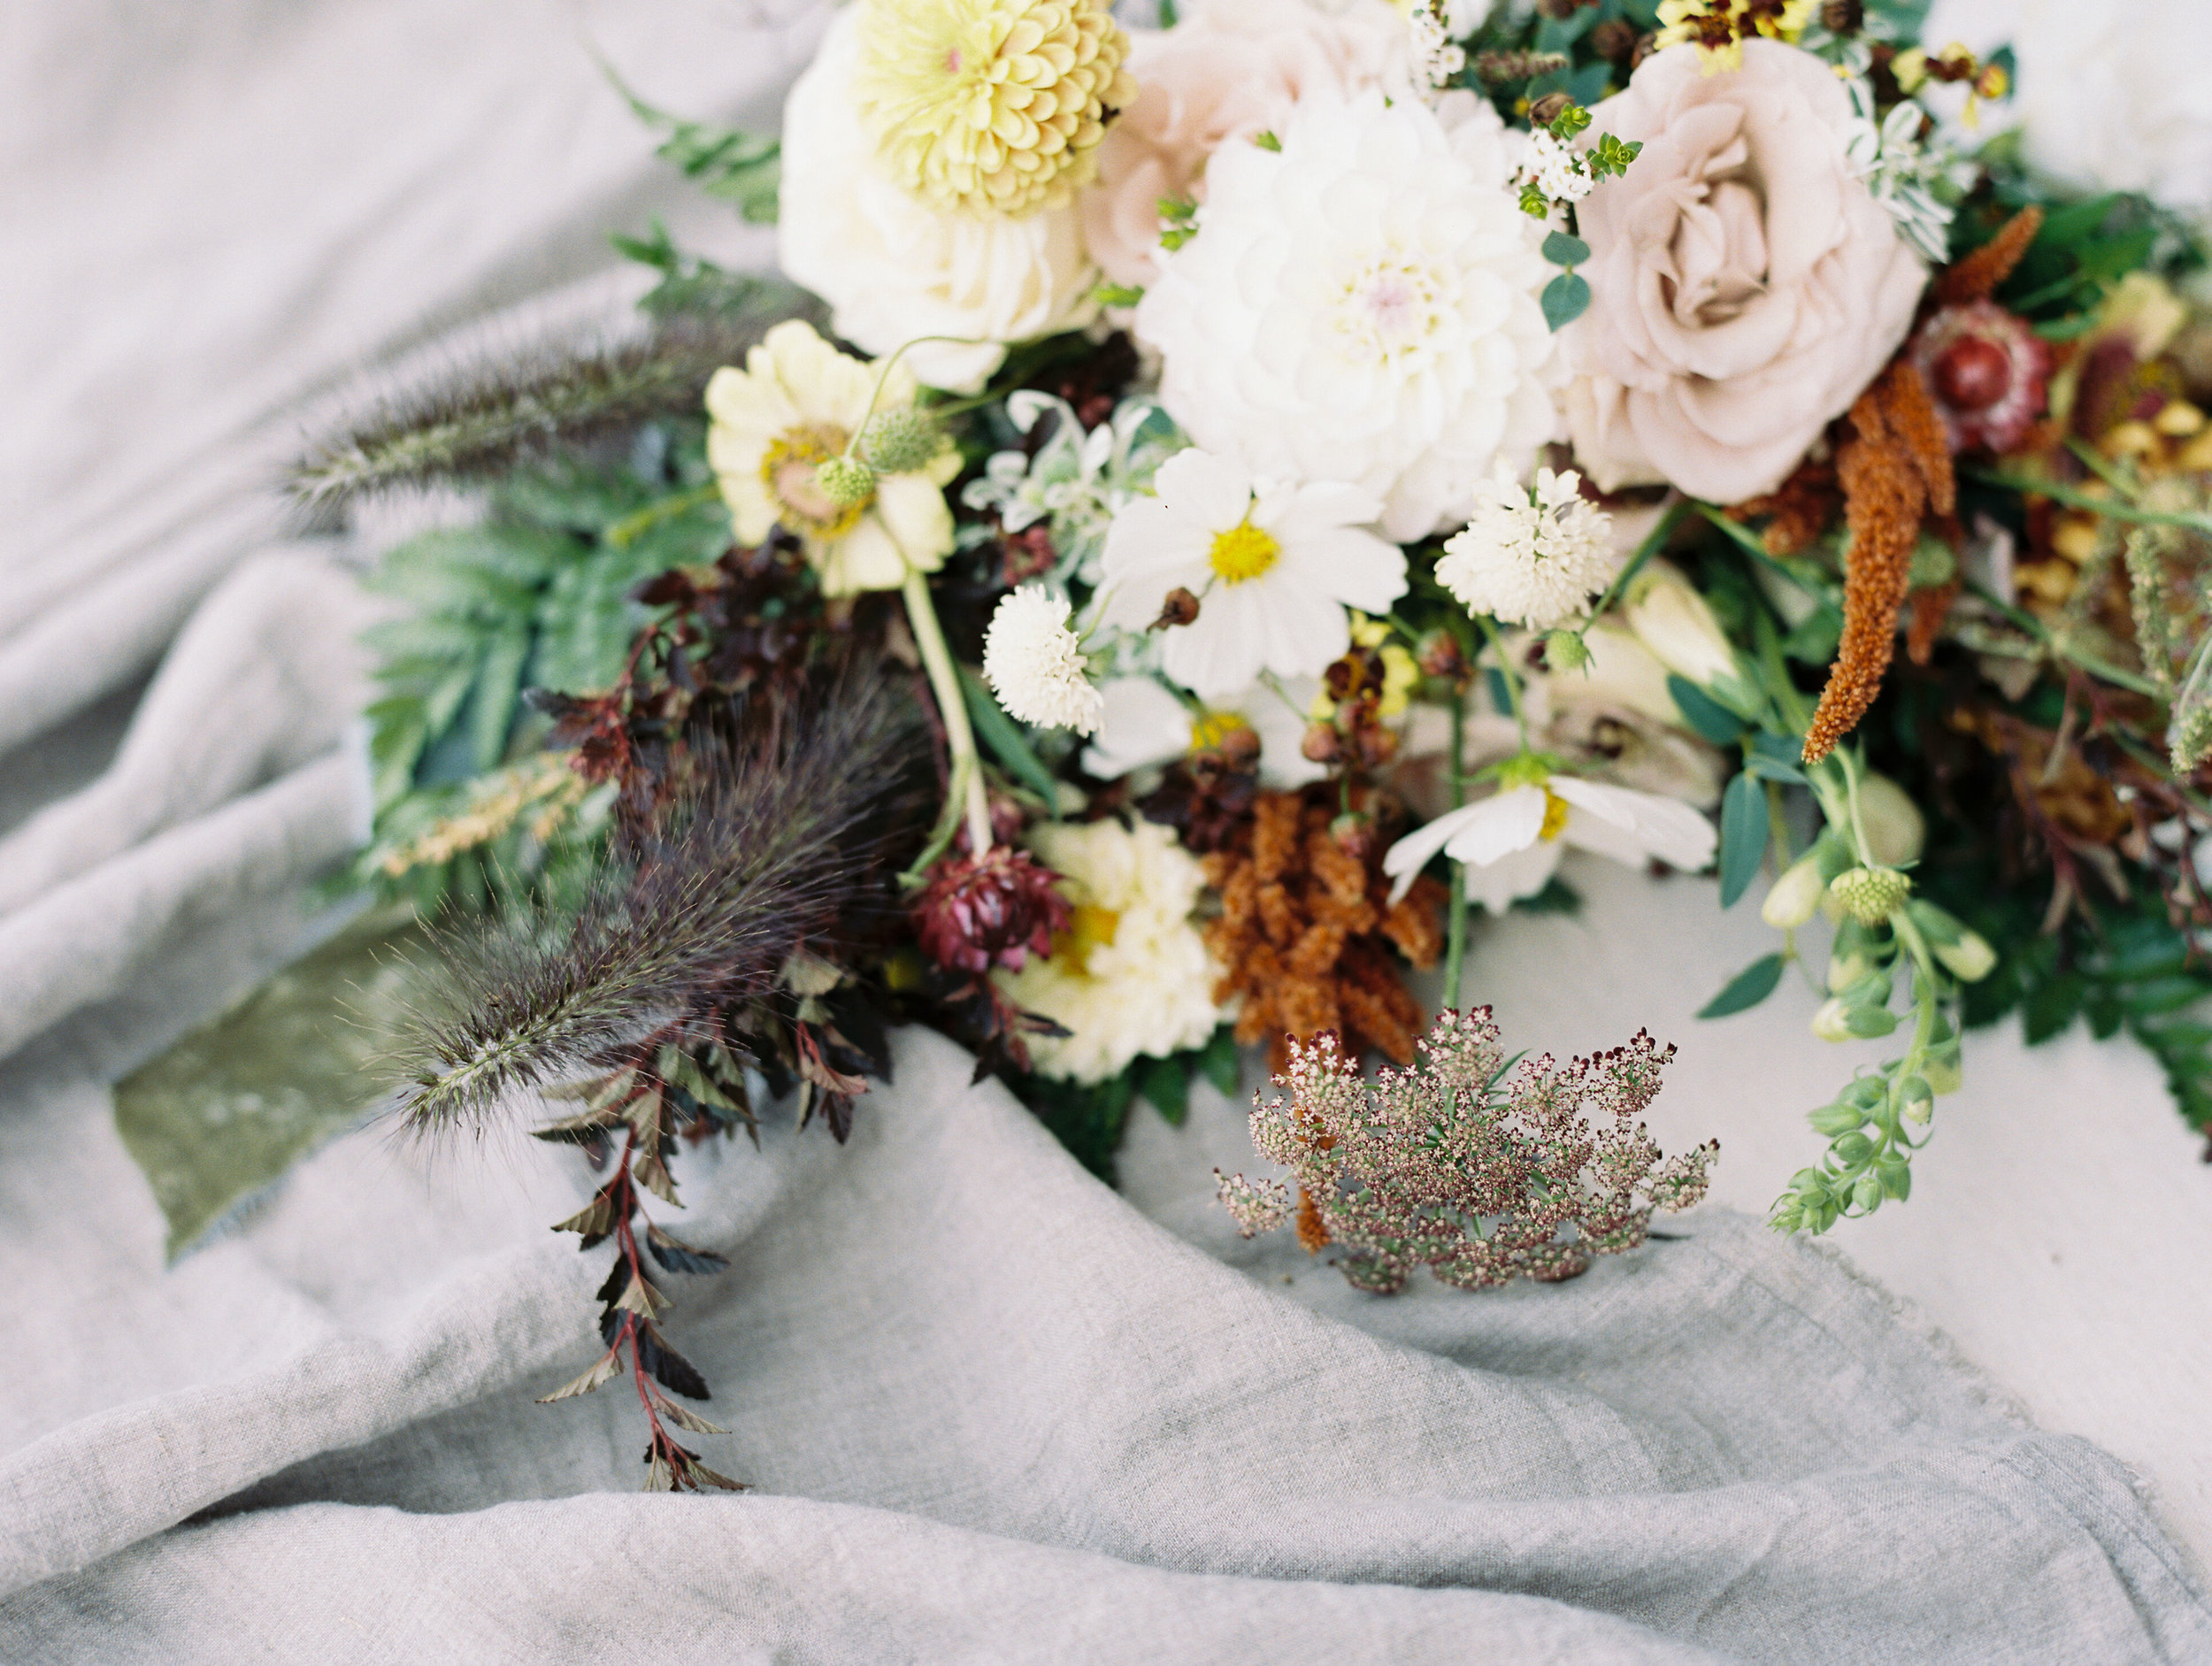 Natural, untamed bridal bouquet in neutral colors with sage green velvet ribbon. Nova Scotia Wedding Floral Design